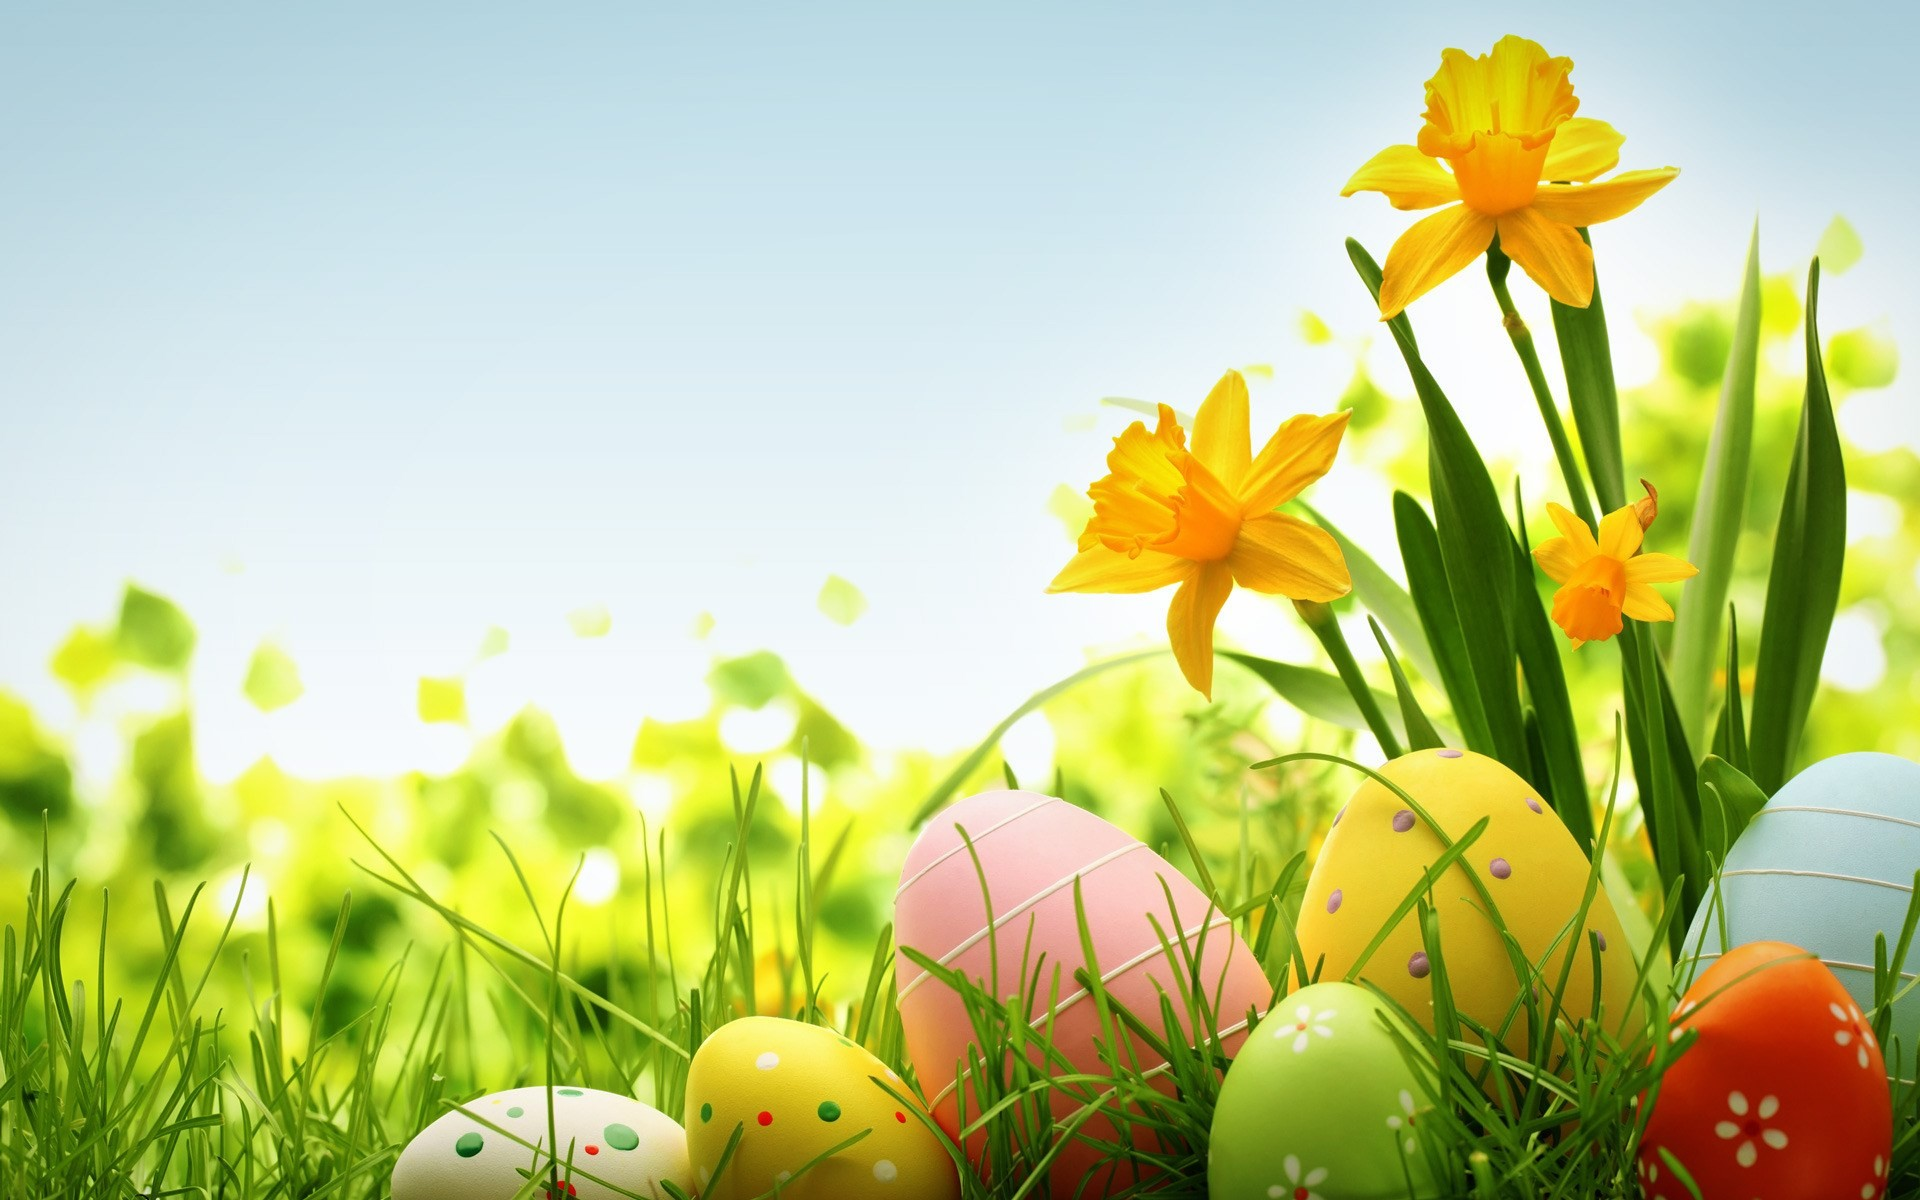 Zedge Full Hd Wallpaper Easter Desktop Backgrounds 183 ① Wallpapertag